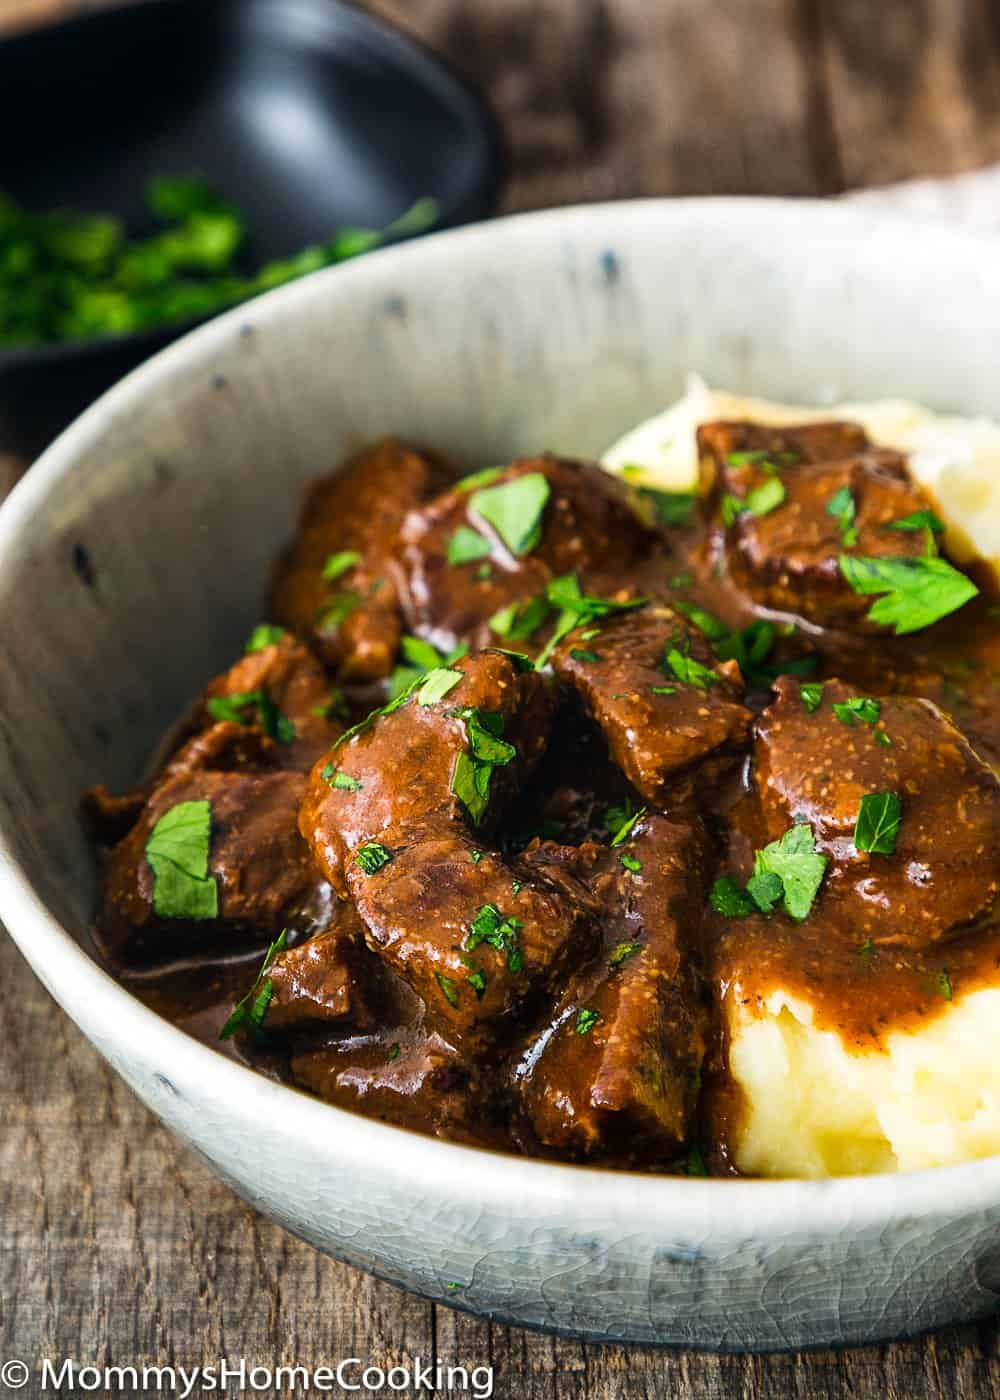 Beef Tips and mashed potatoes garnished with chopped parsley